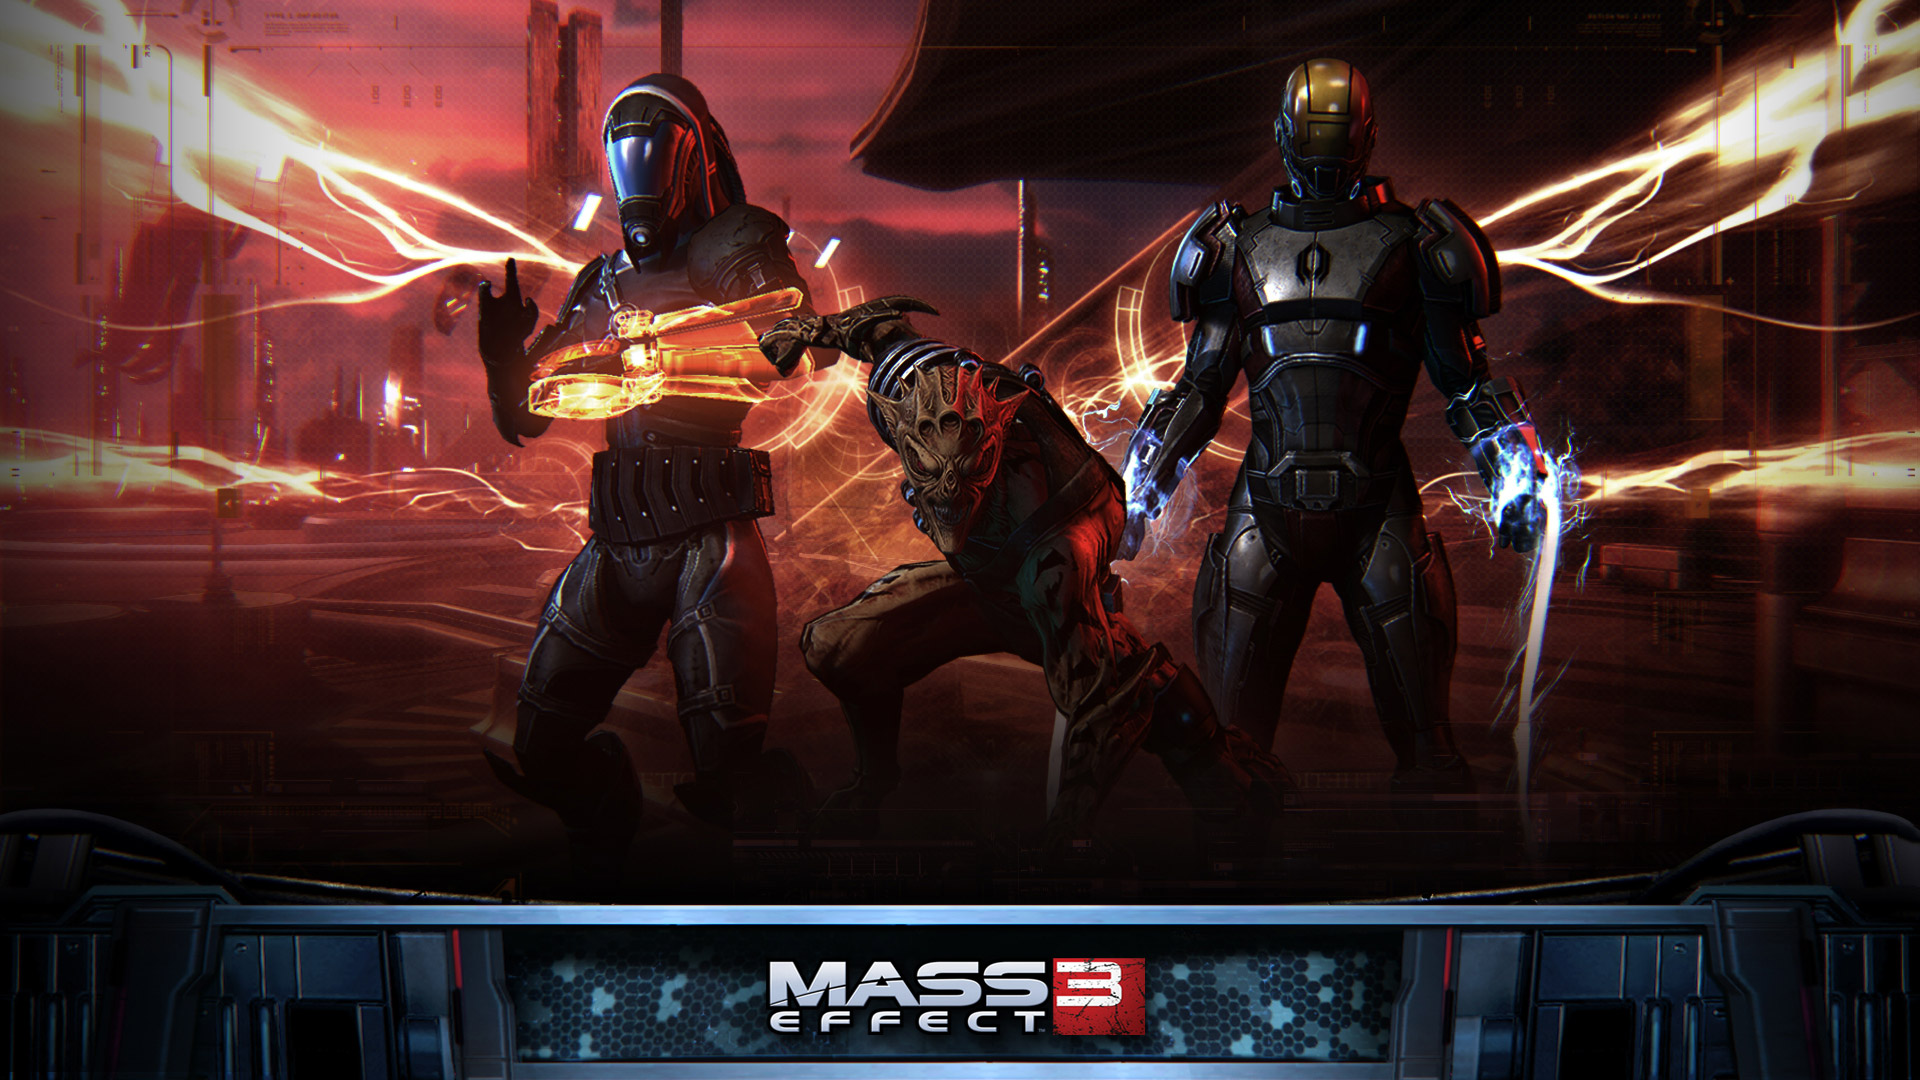 Mass Effect 3 Wallpaper in 1920x1080